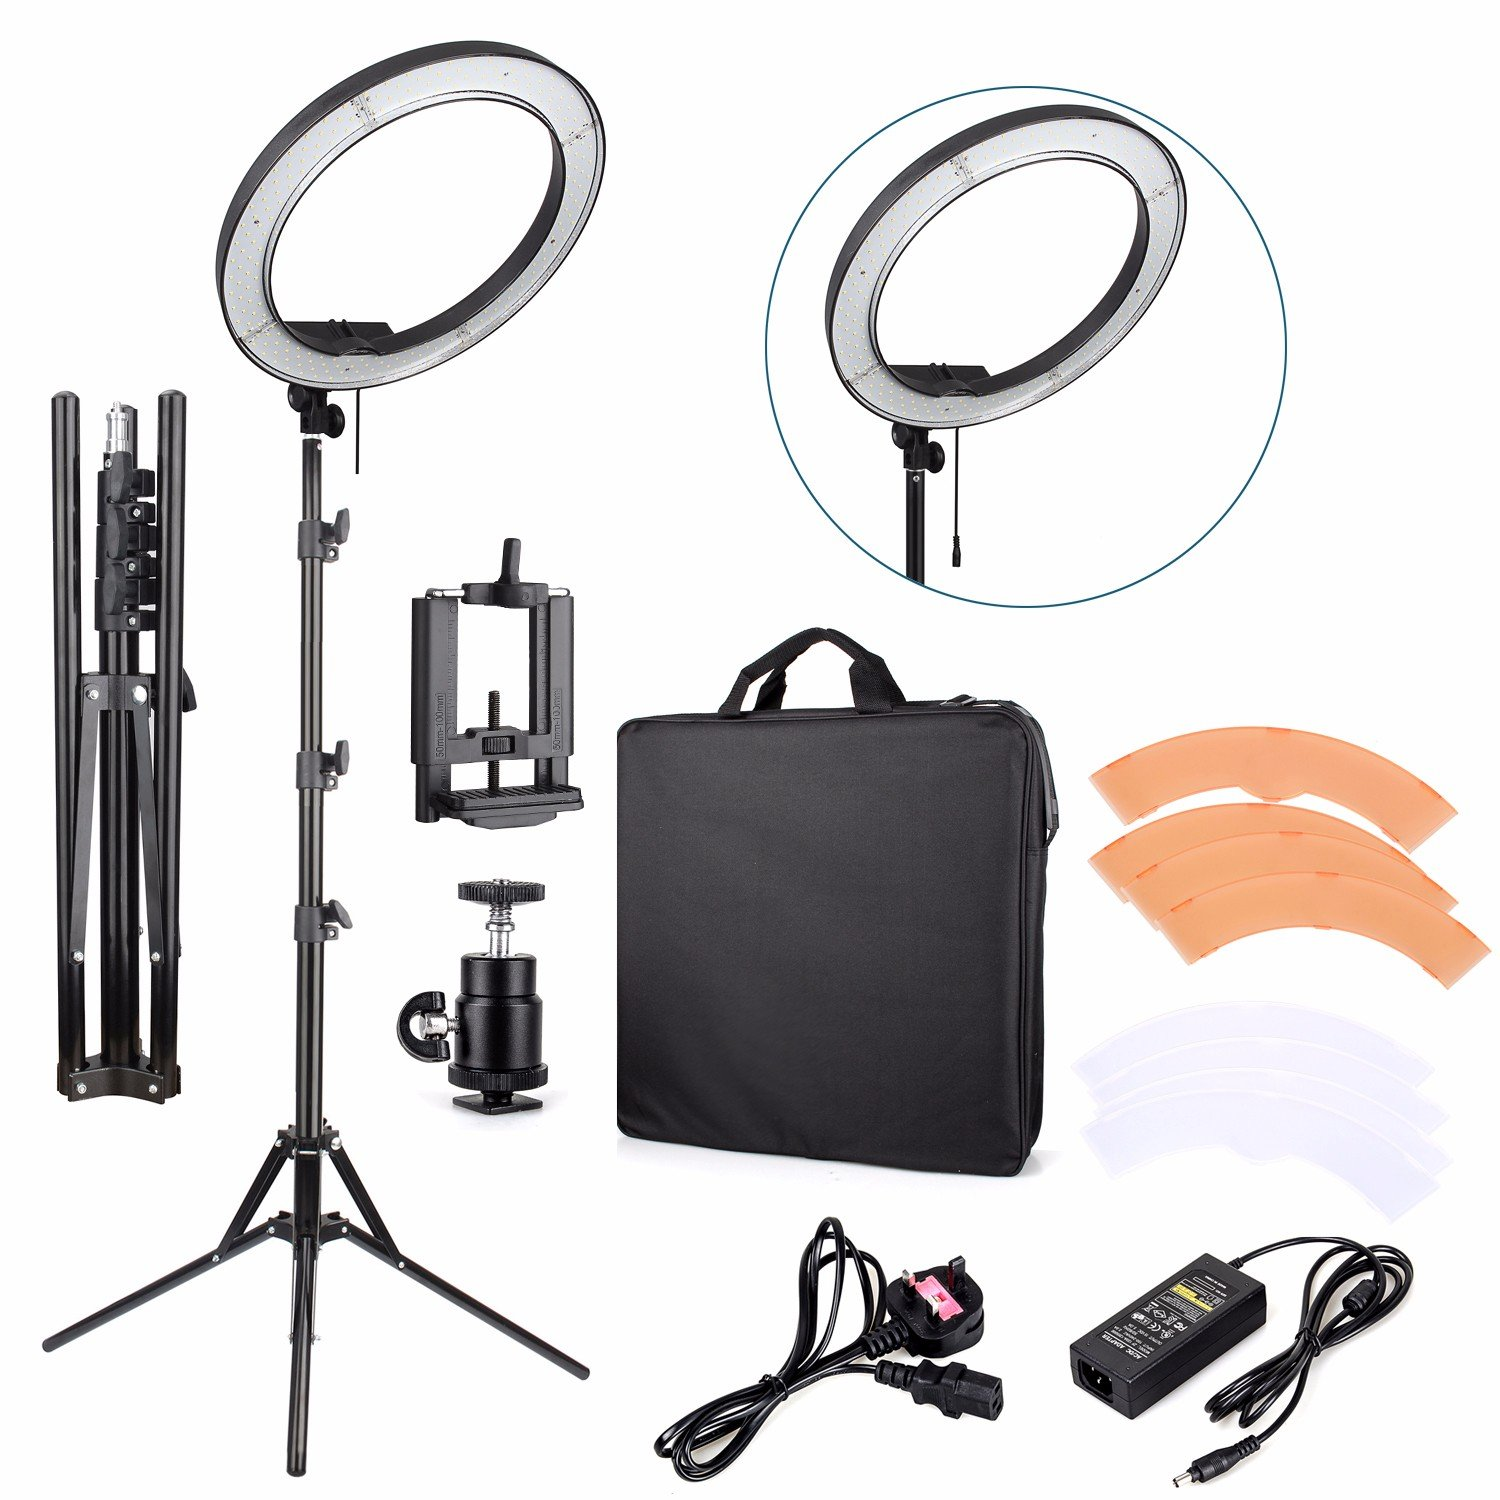 EACHSHOT ES240 Kit {Including Light, Stand, Phone Clamp, Tripod Head }240 LED 18'' Stepless Adjustable Ring Light Camera Photo/Video Portrait photography 5500K Dimmable (Light Stand Included)